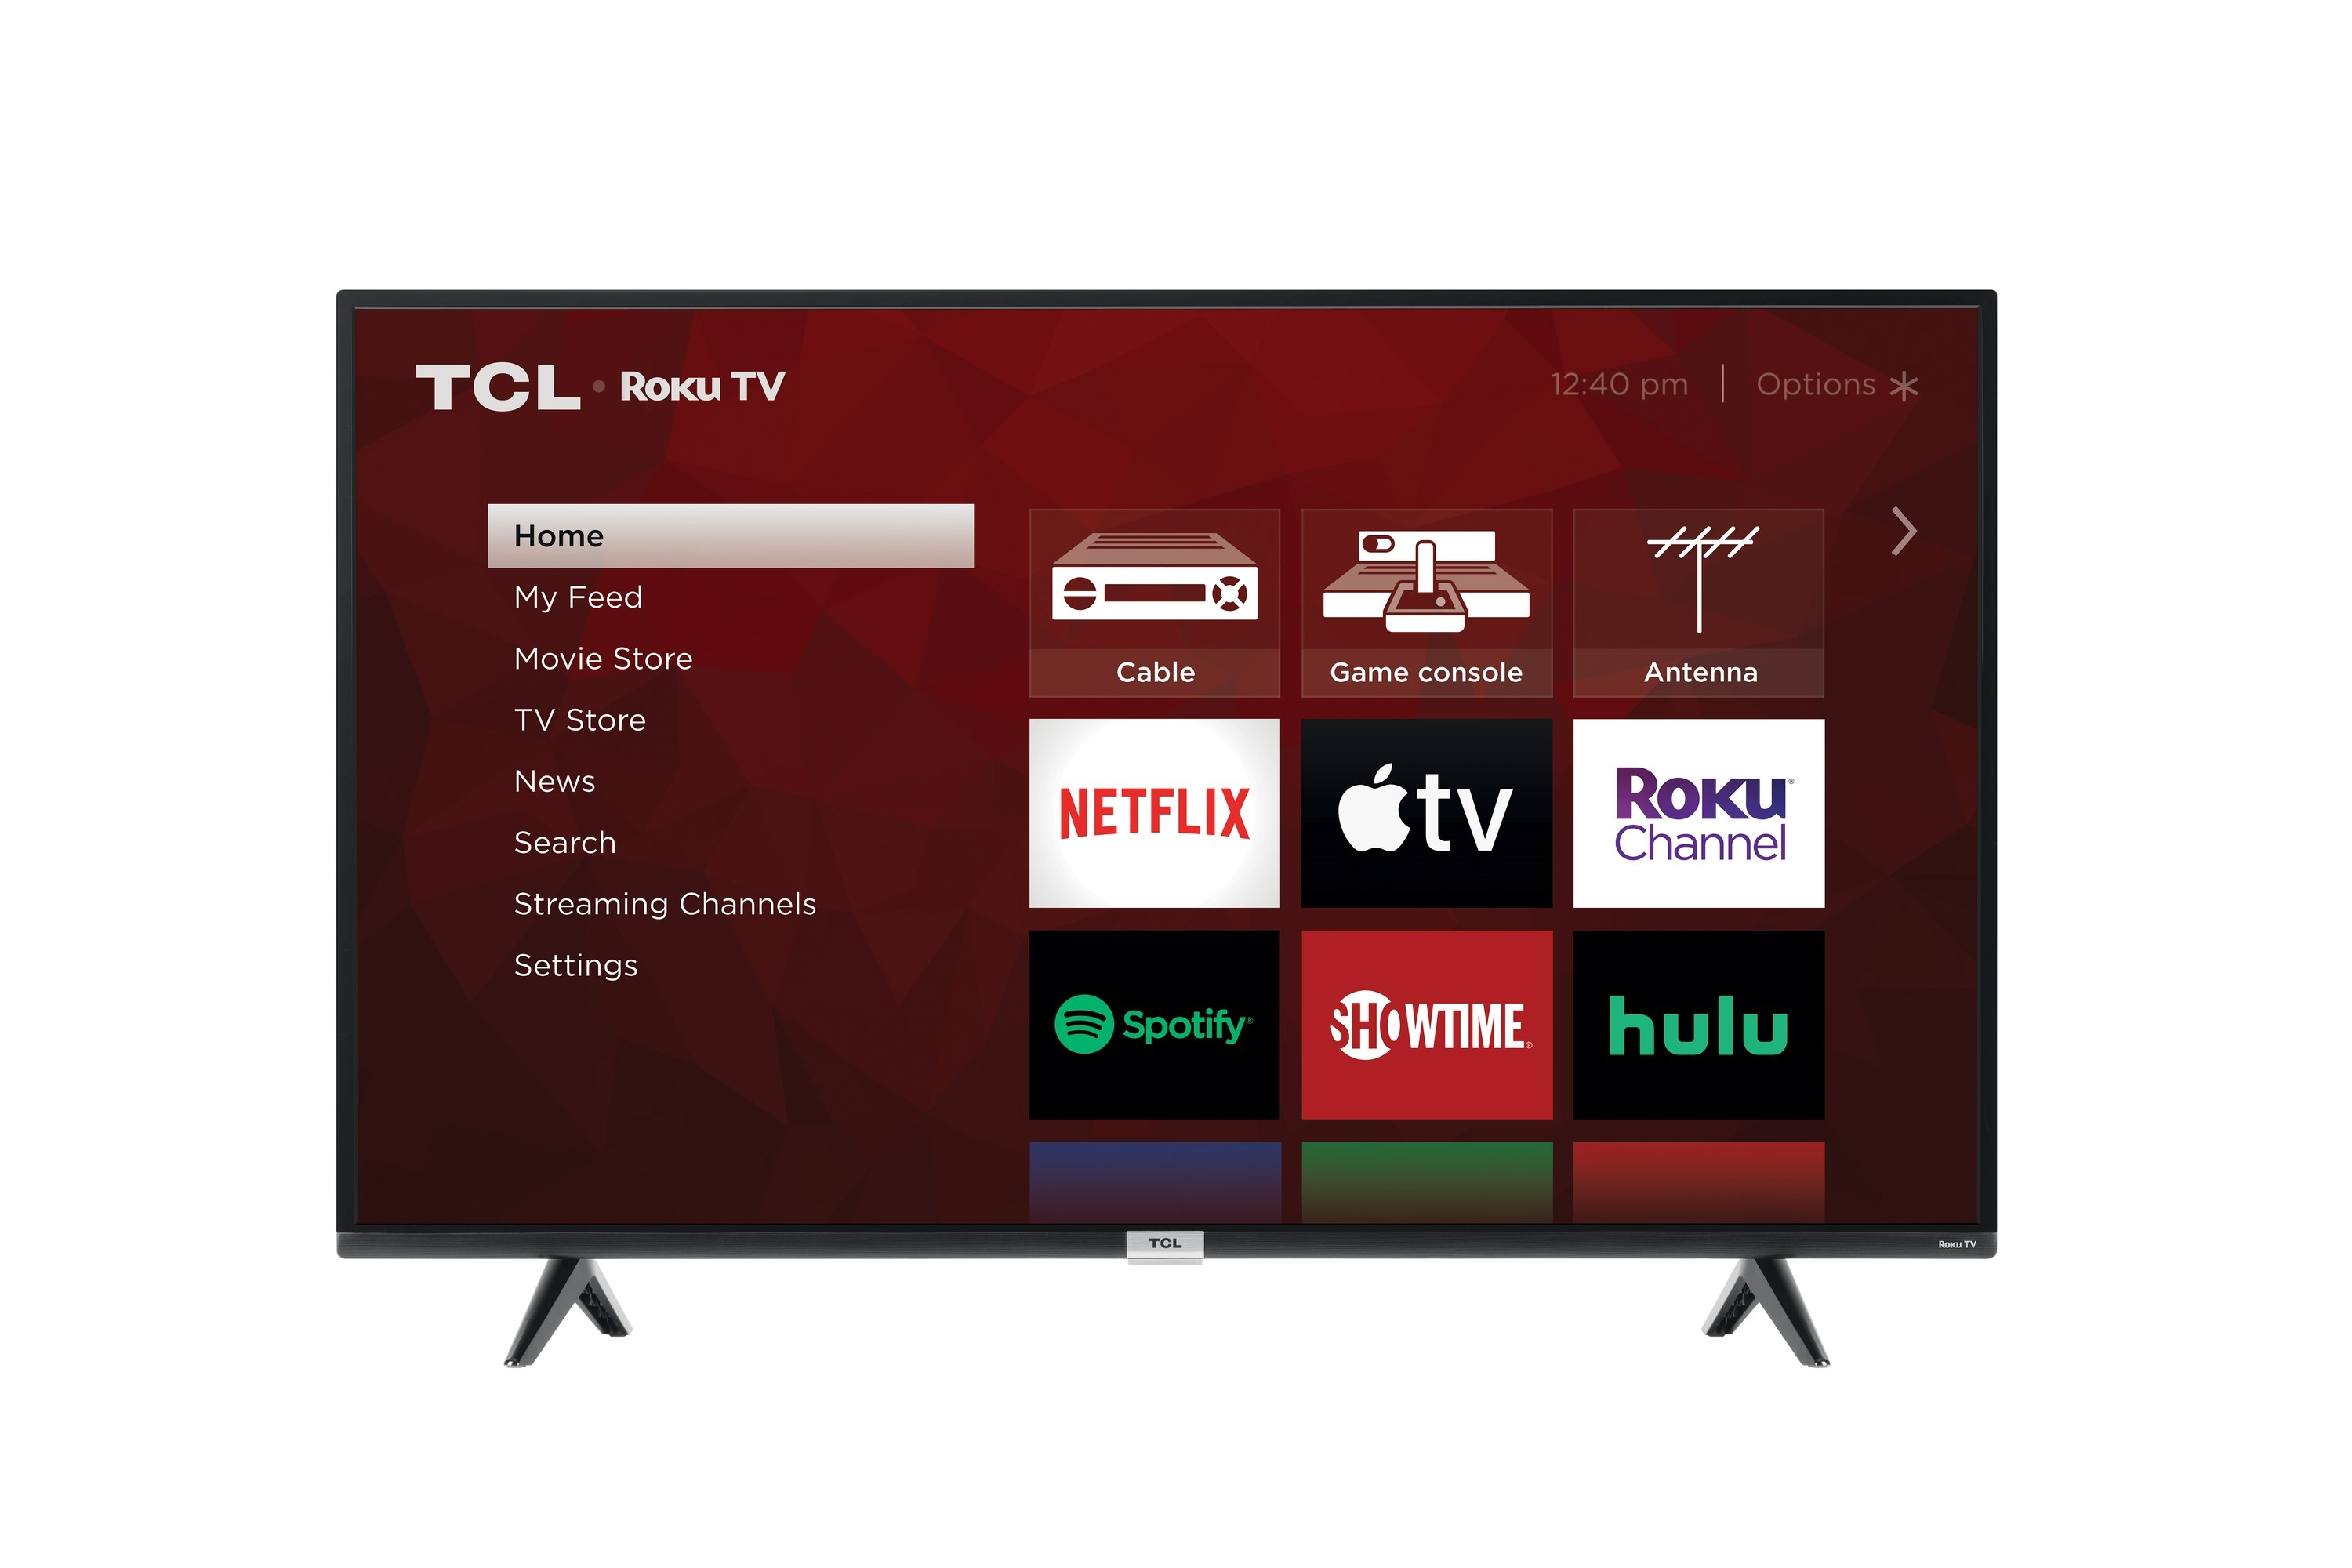 The TV with a red home screen